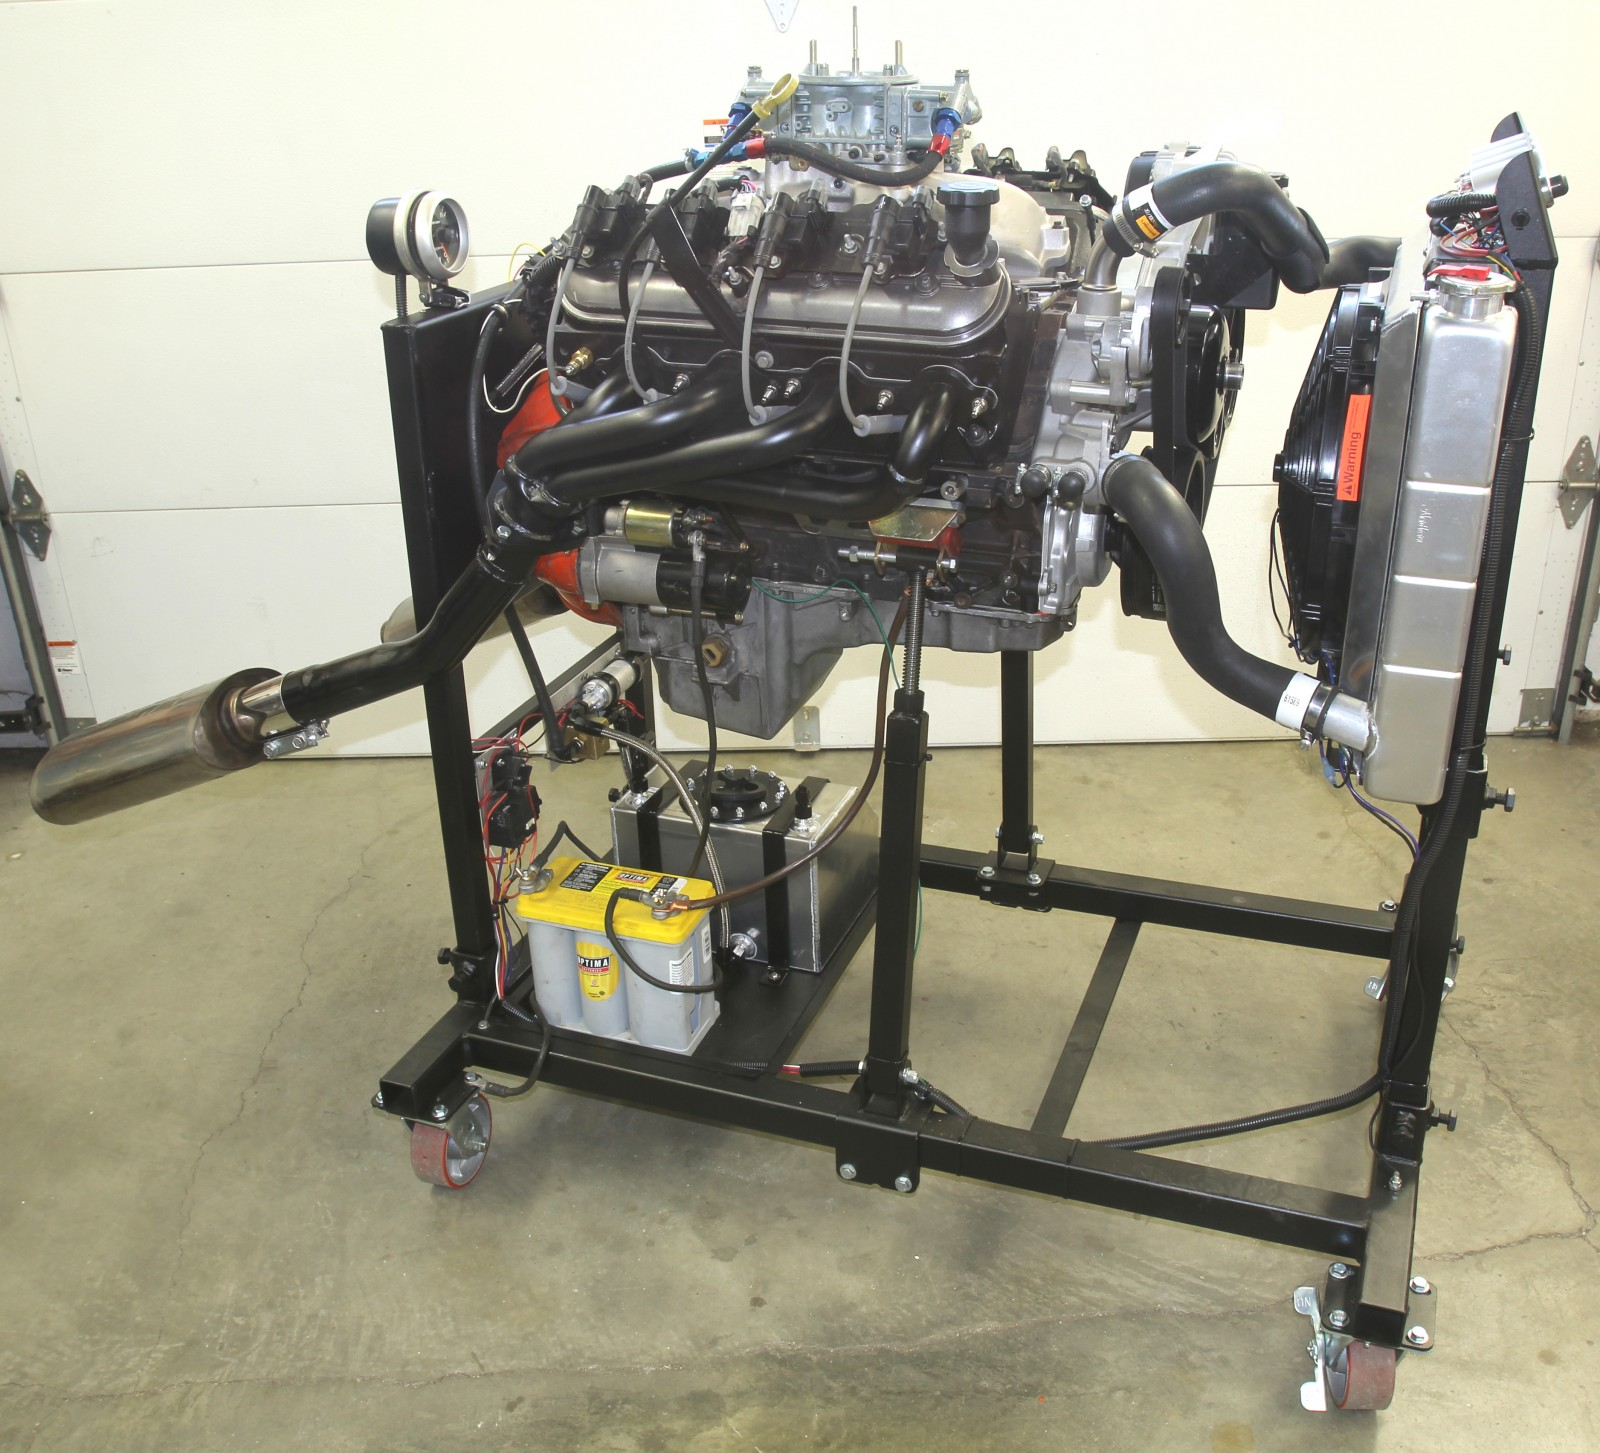 hight resolution of take a stand building summit racing u0027s engine test standhere u0027s our engine